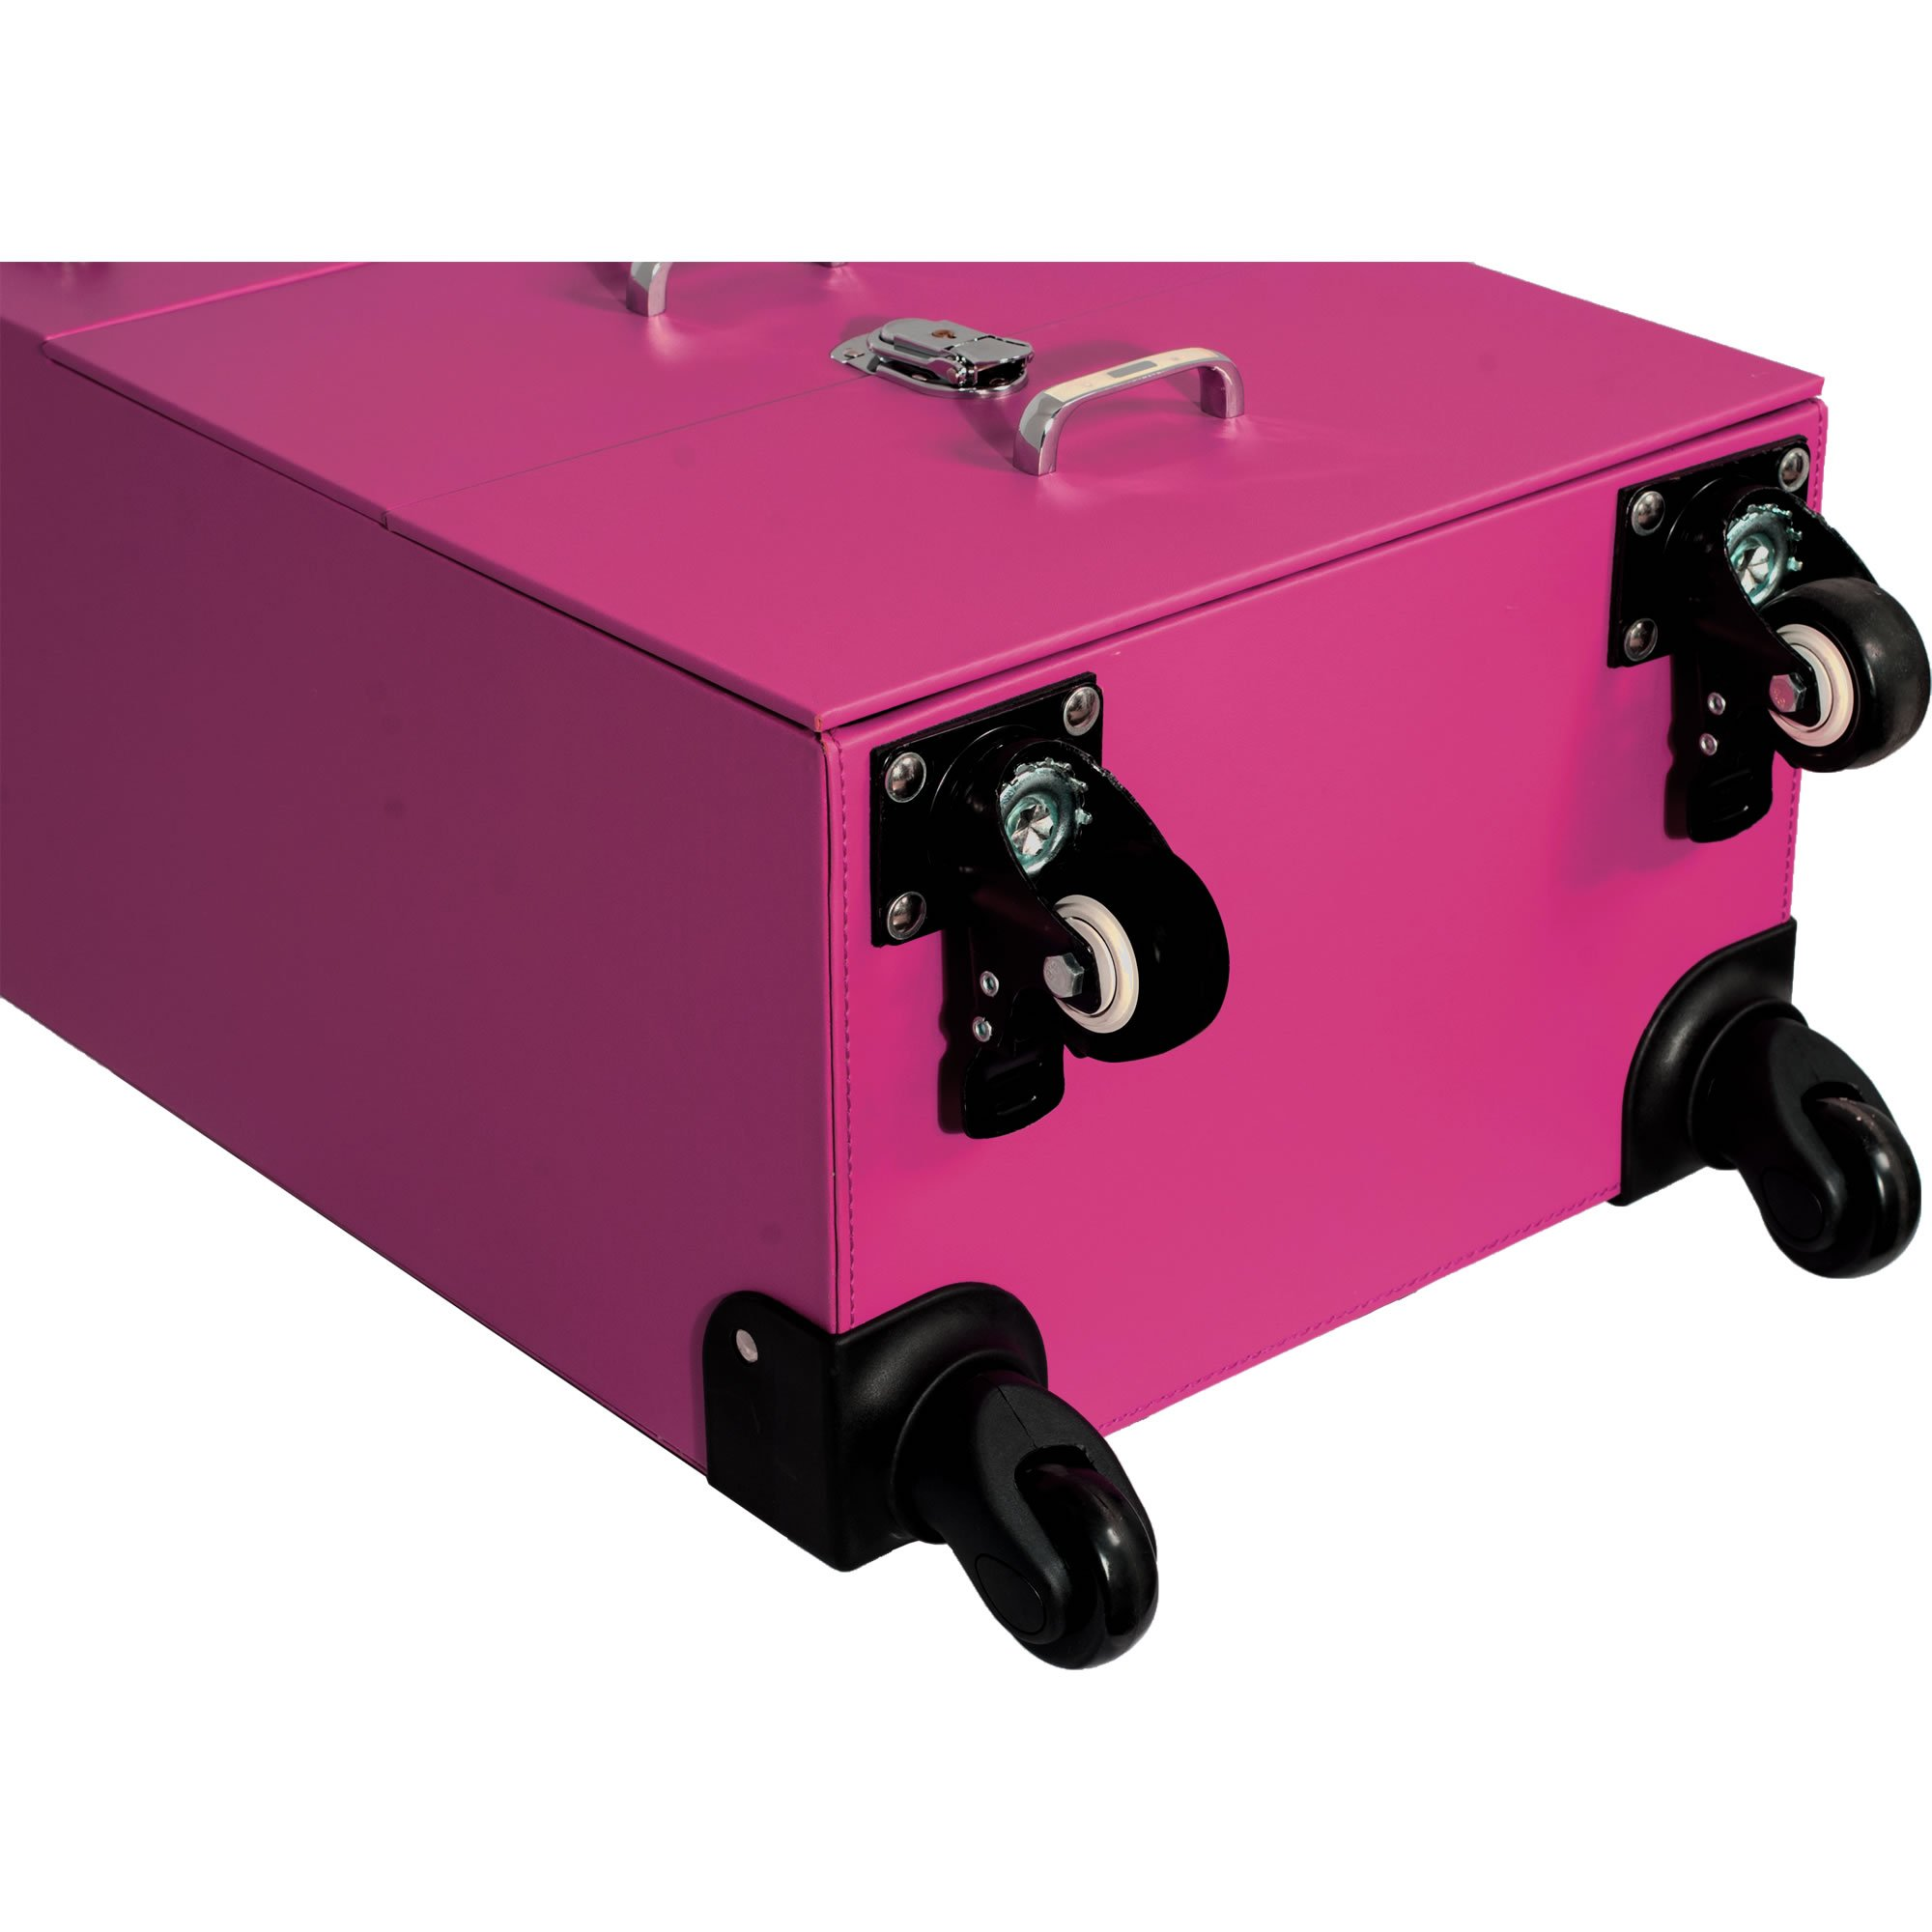 Sunrise Faux Leather Professional Nail Artistry 4 Wheel Rolling Makeup Case, Pink by SunRise (Image #5)